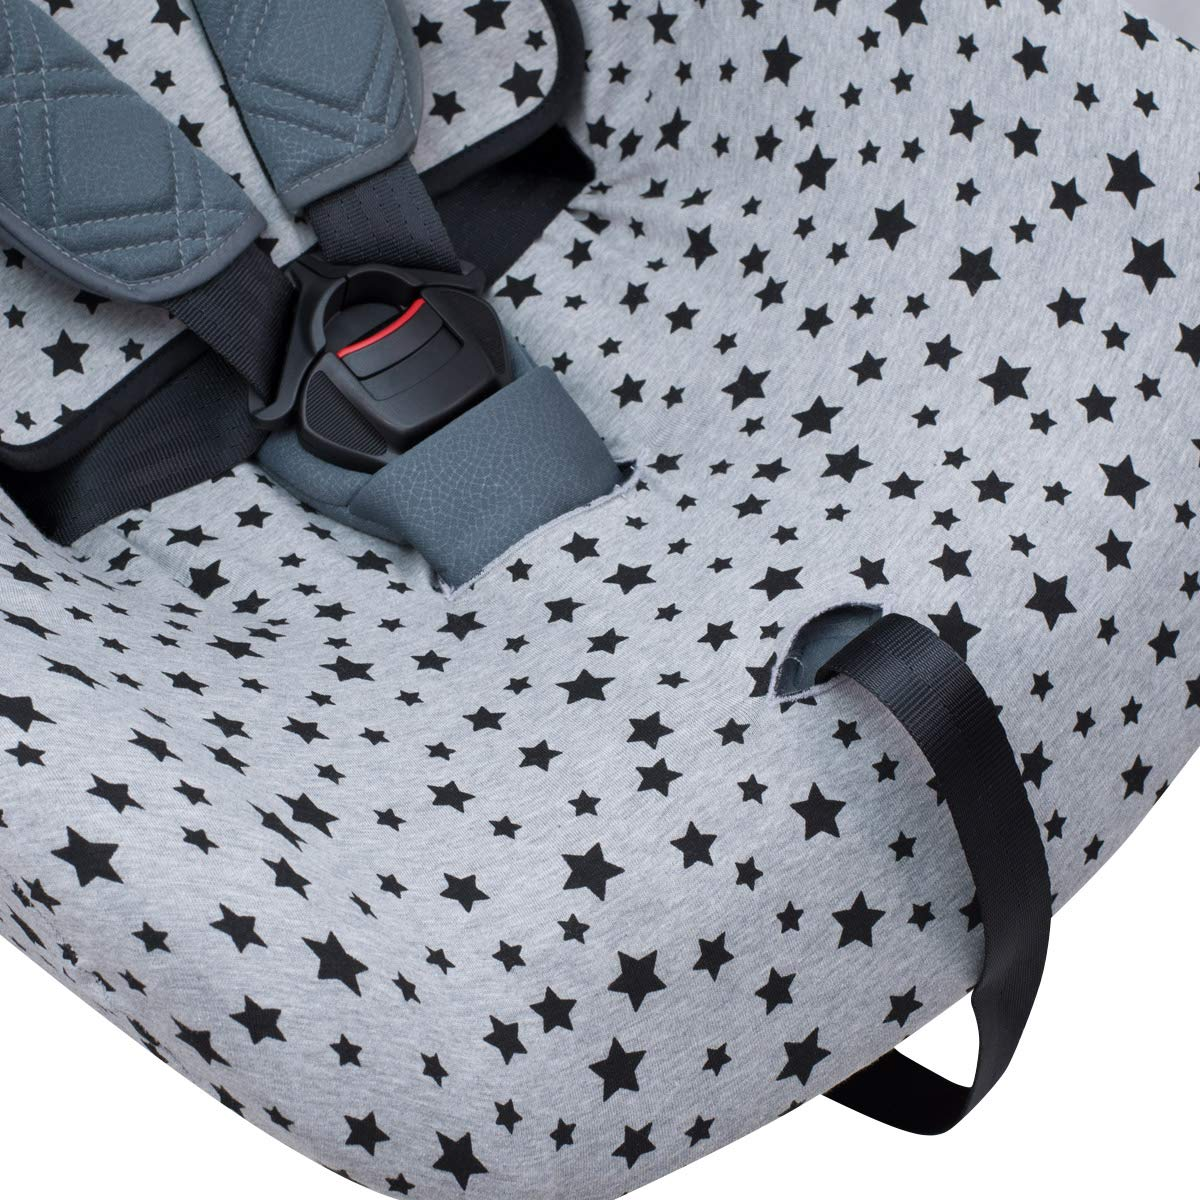 JANABEBE Cover Liner Compatible with Chico Nextfit Black Star